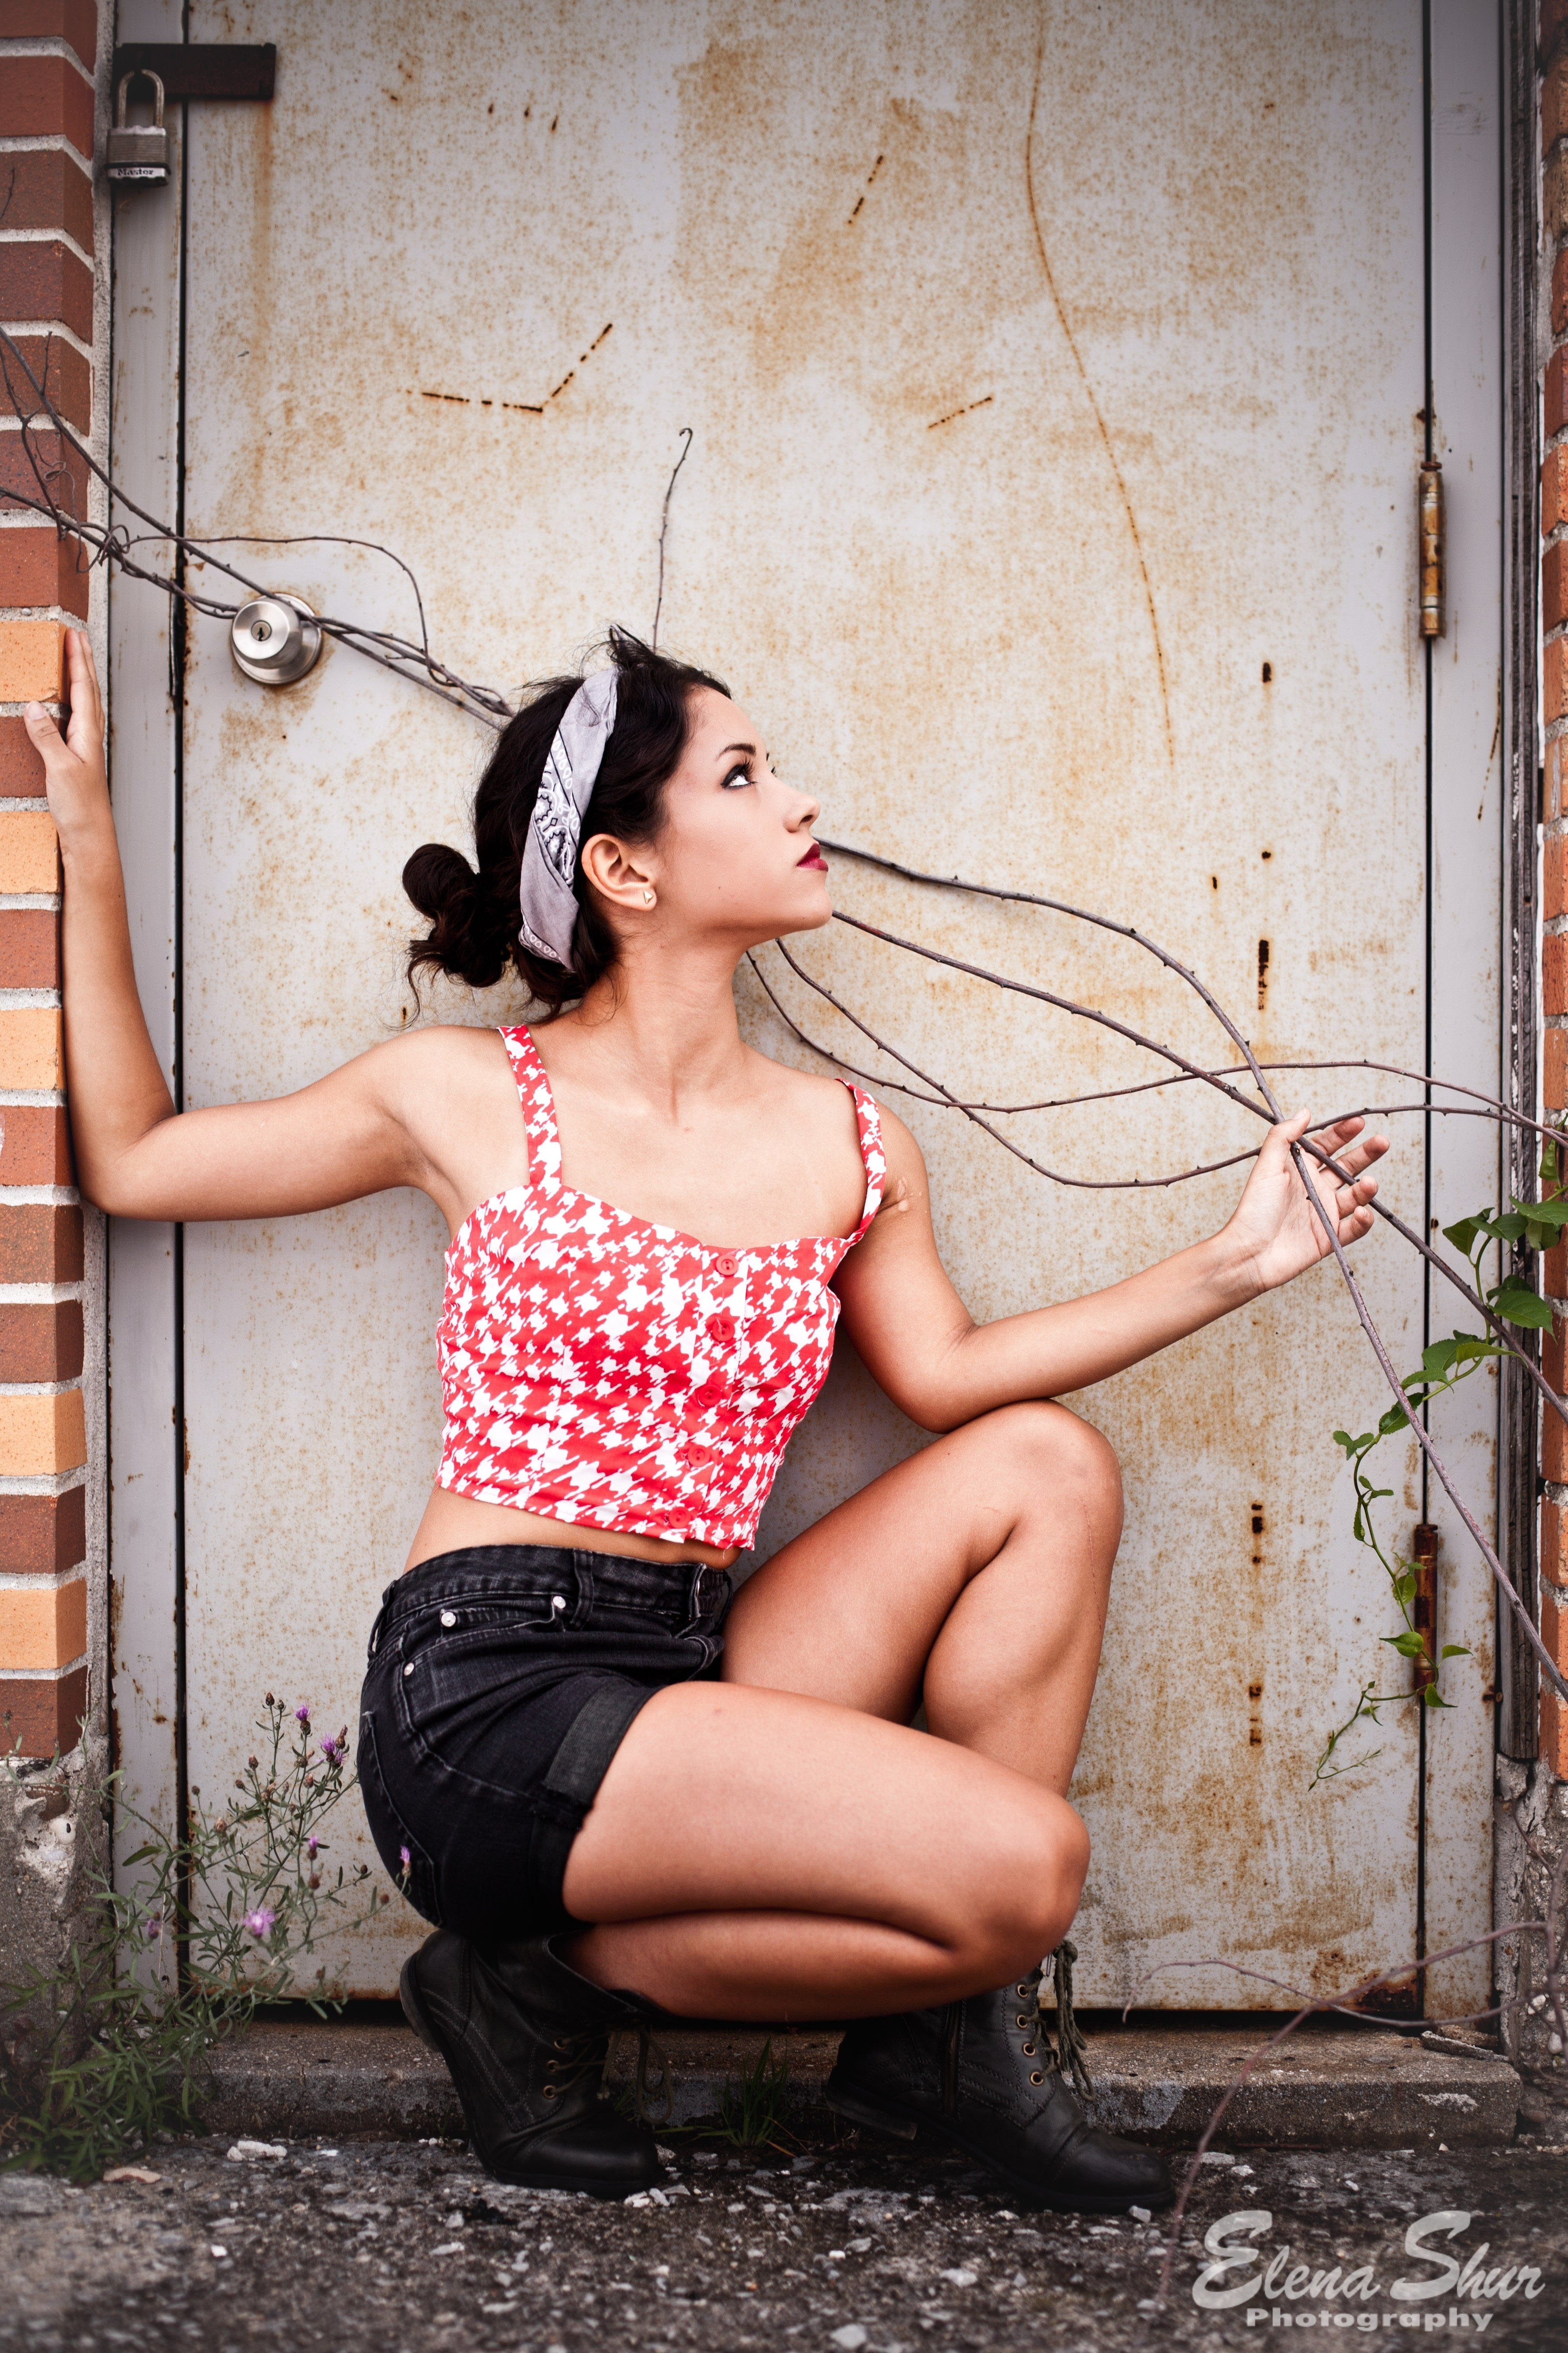 10 Beautiful Pin Up Girl Photoshoot Ideas photo by elena shur edgy and vintage photoshoot with a pin up 2020